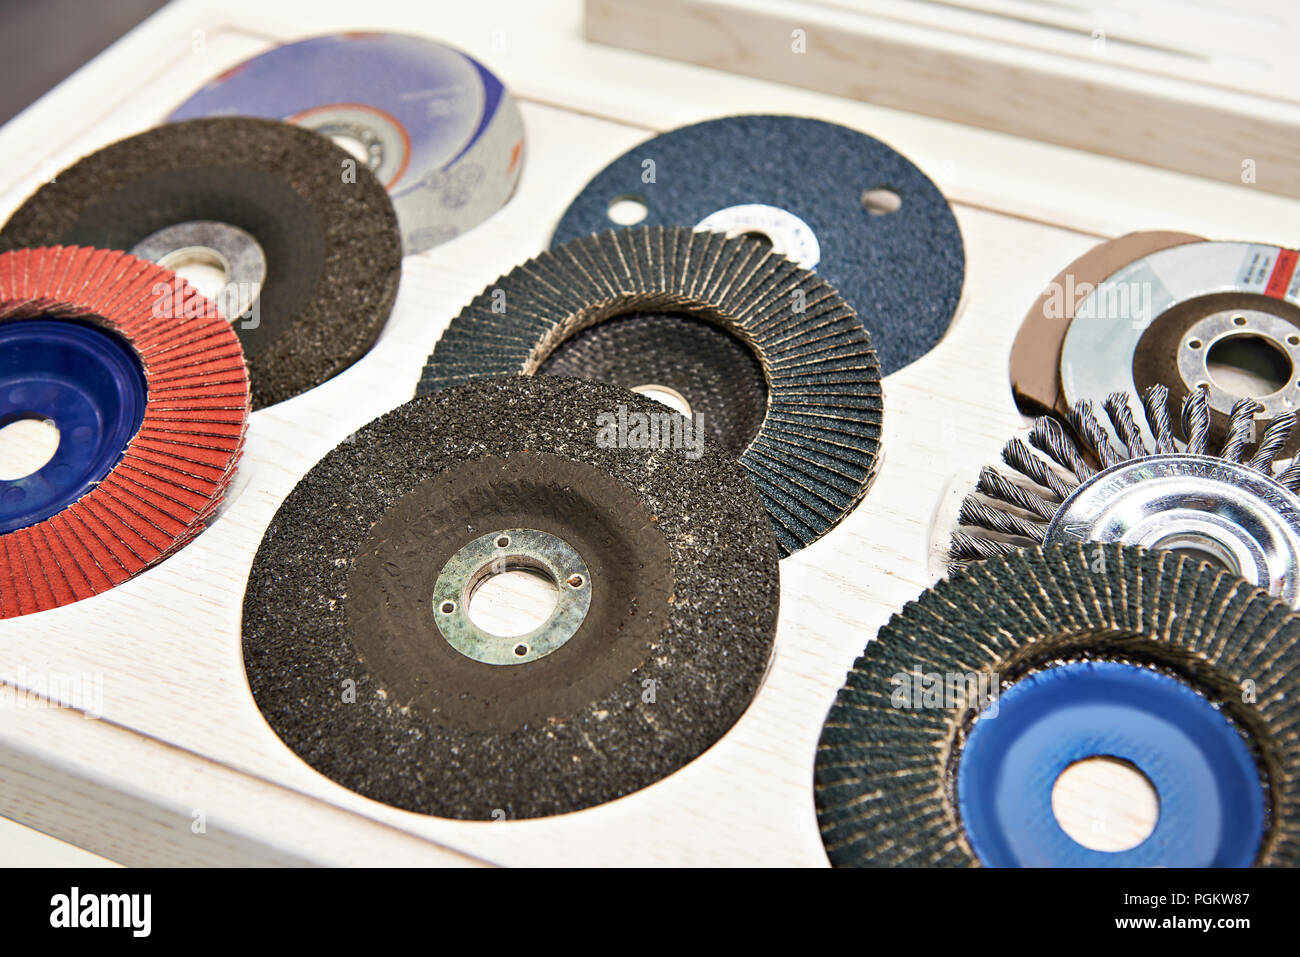 Abrasive disc for angle grinder in store - Stock Image